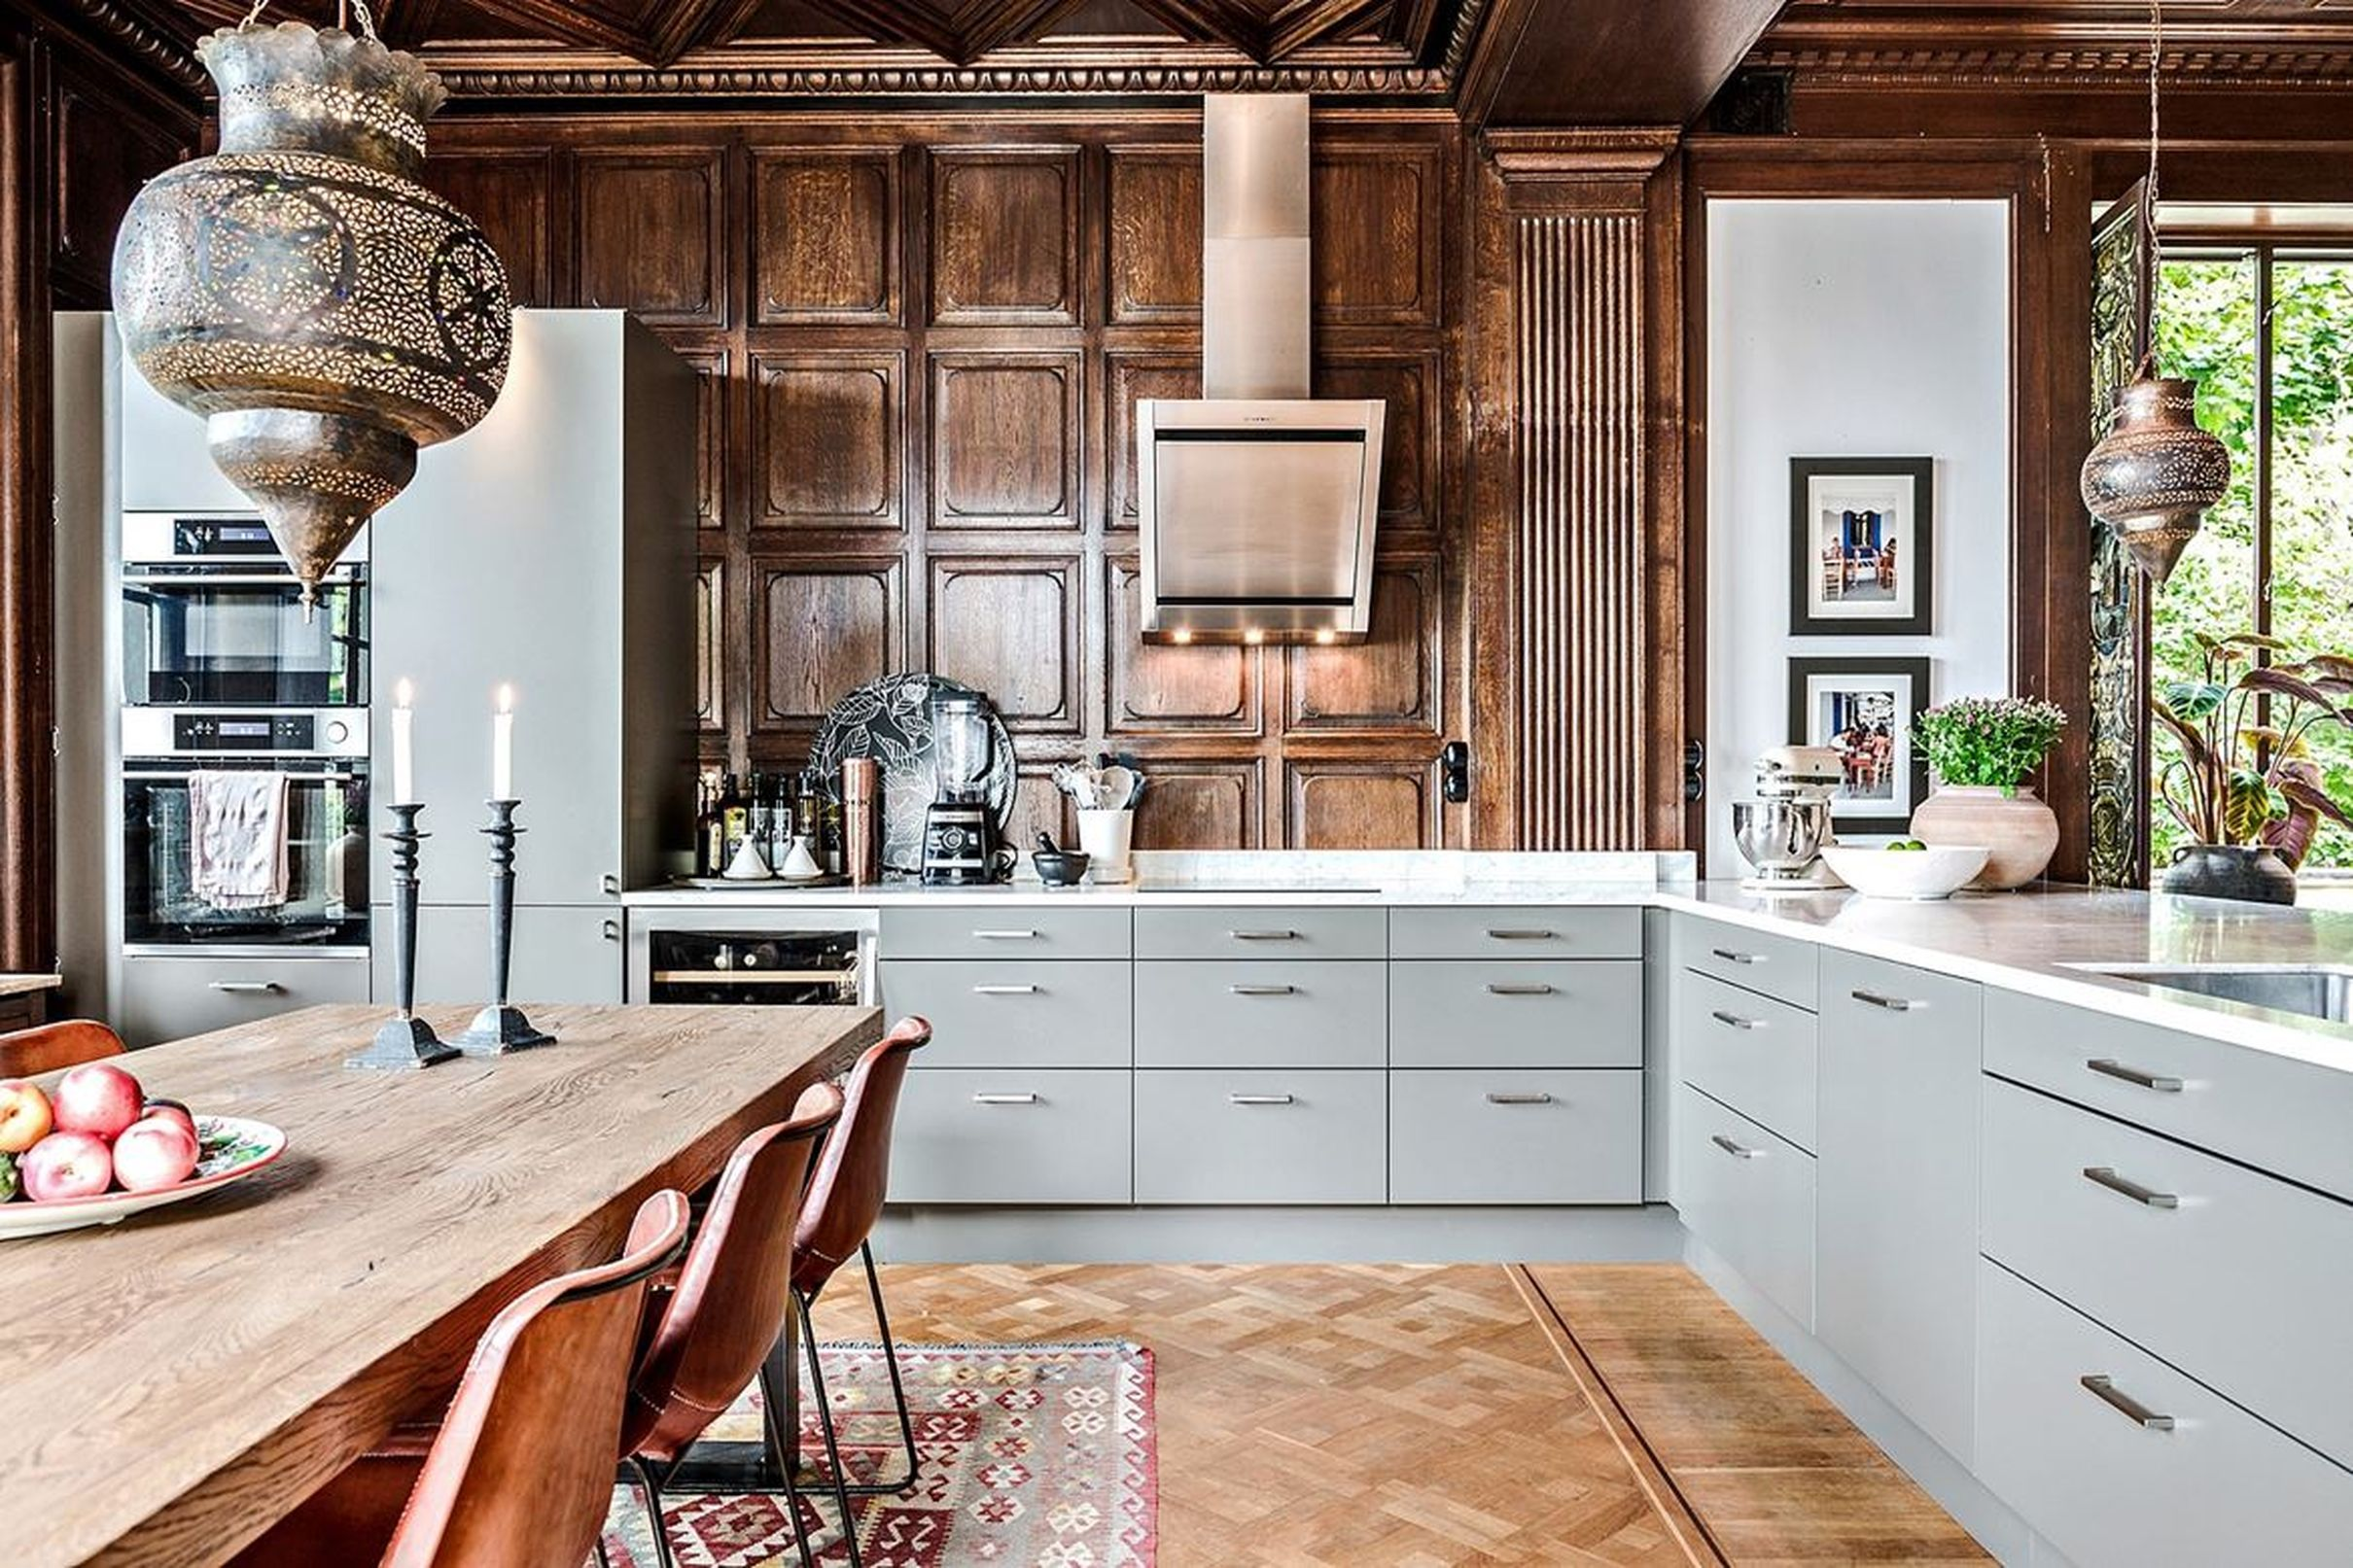 Swedish Apartment For Sale Is A Daring Mix Of Old And New Curbed Kitchen Design New Kitchen Apartments For Sale